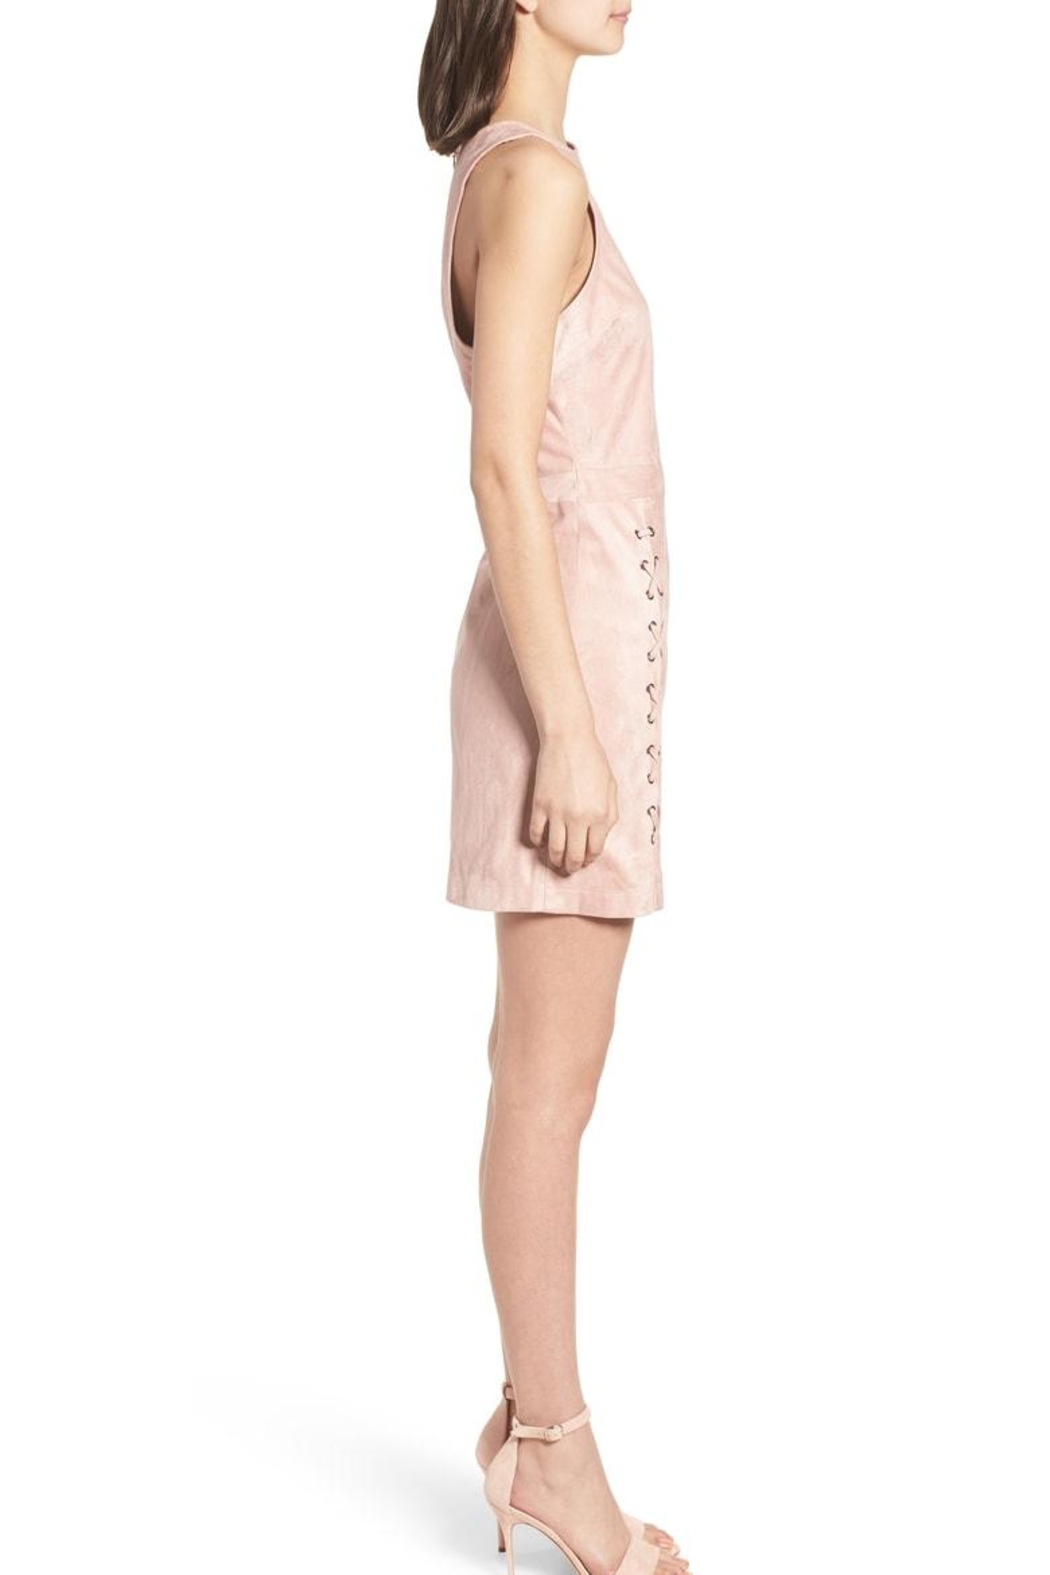 Cupcakes and Cashmere Daton Suede Dress - Side Cropped Image